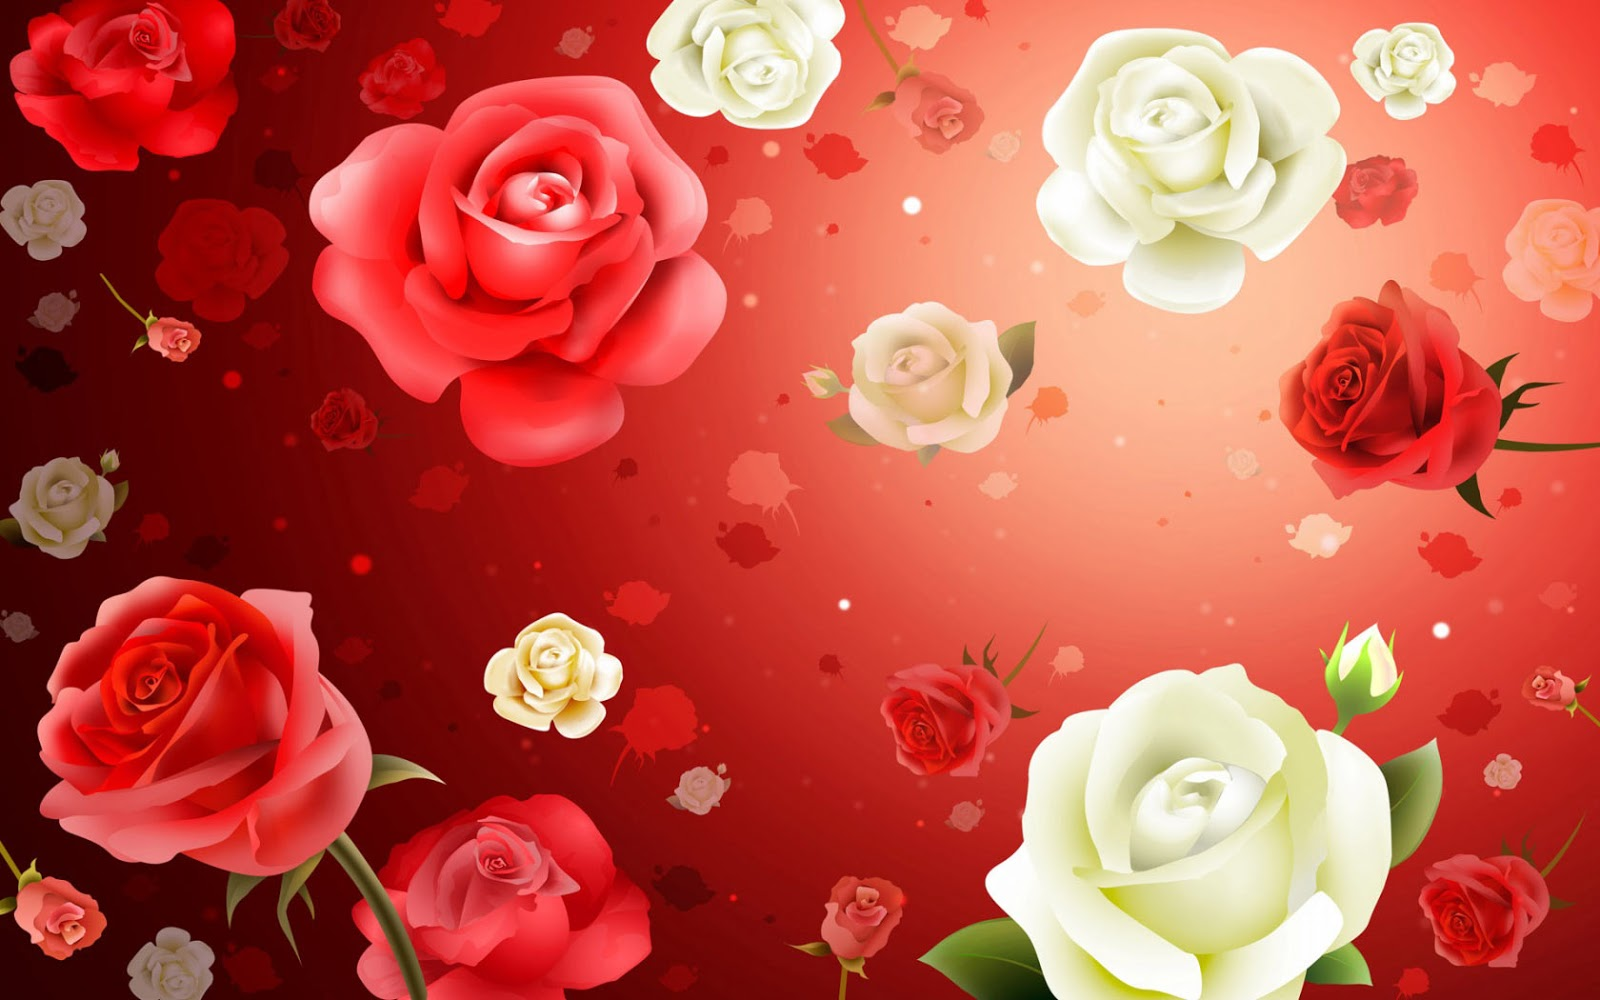 wallpaper flowers rose